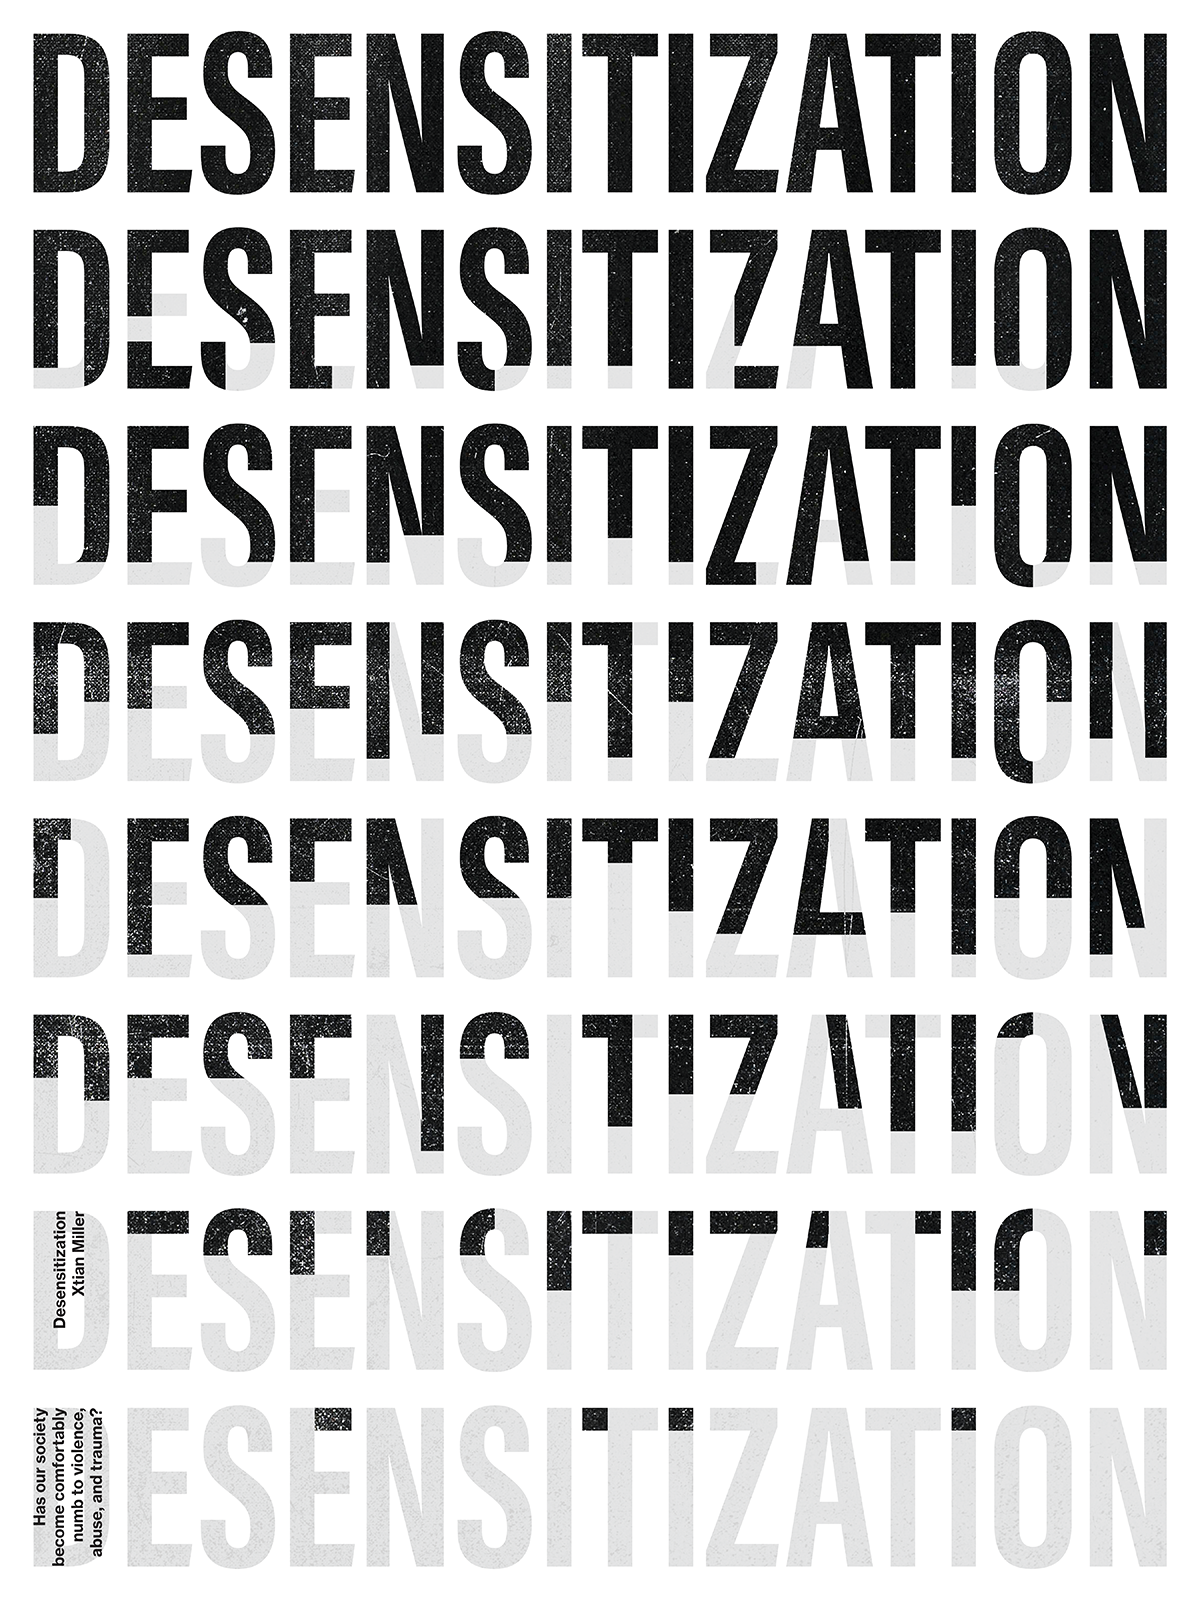 Type poster with the word 'DESENSITIZATION' repeating top to bottom, black to gray.